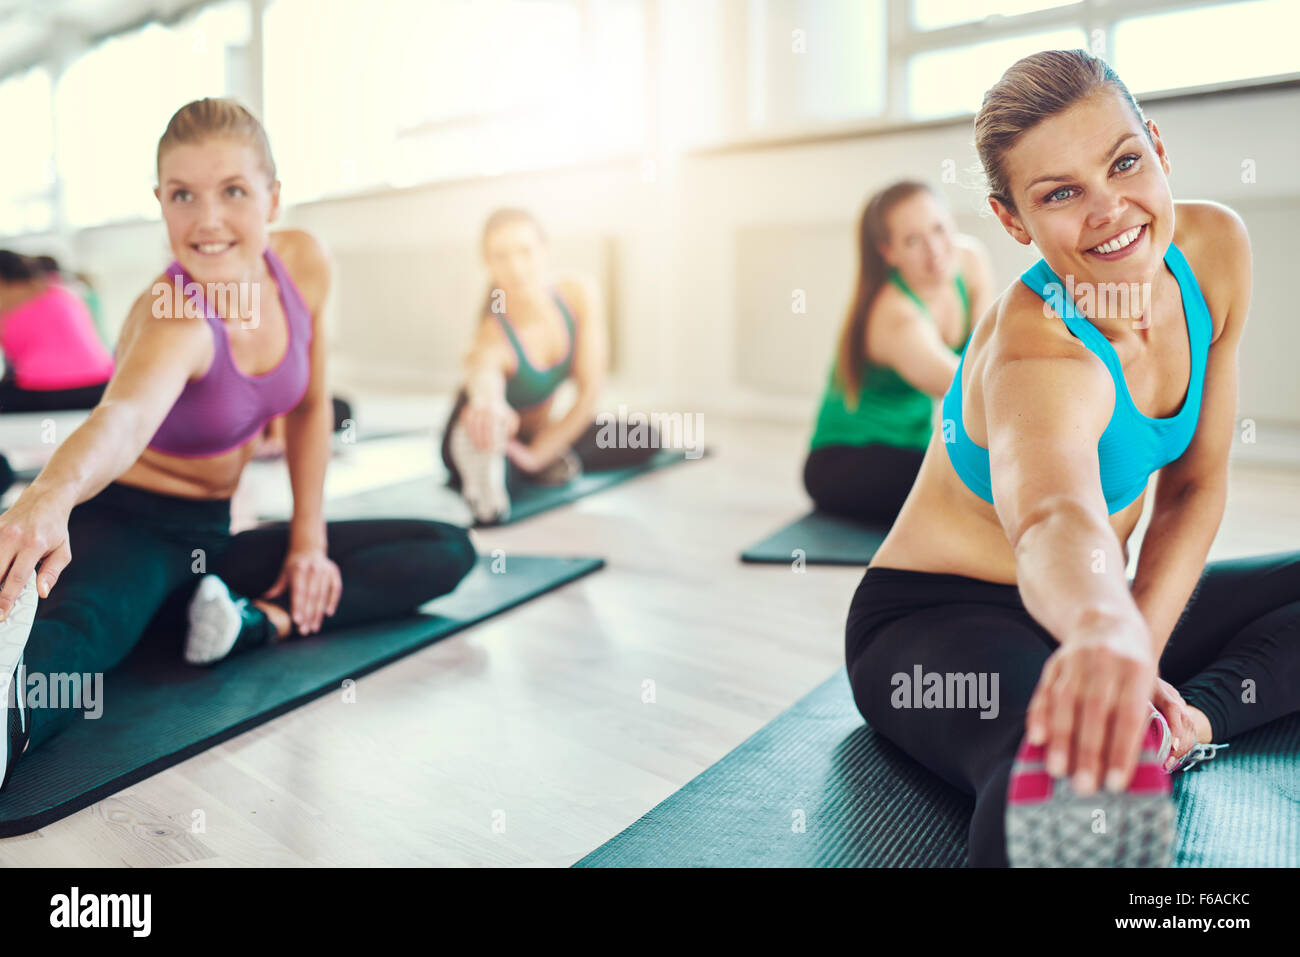 Group of healthy women in a fitness class, fitness, sport, training, aerobics concept - Stock Image